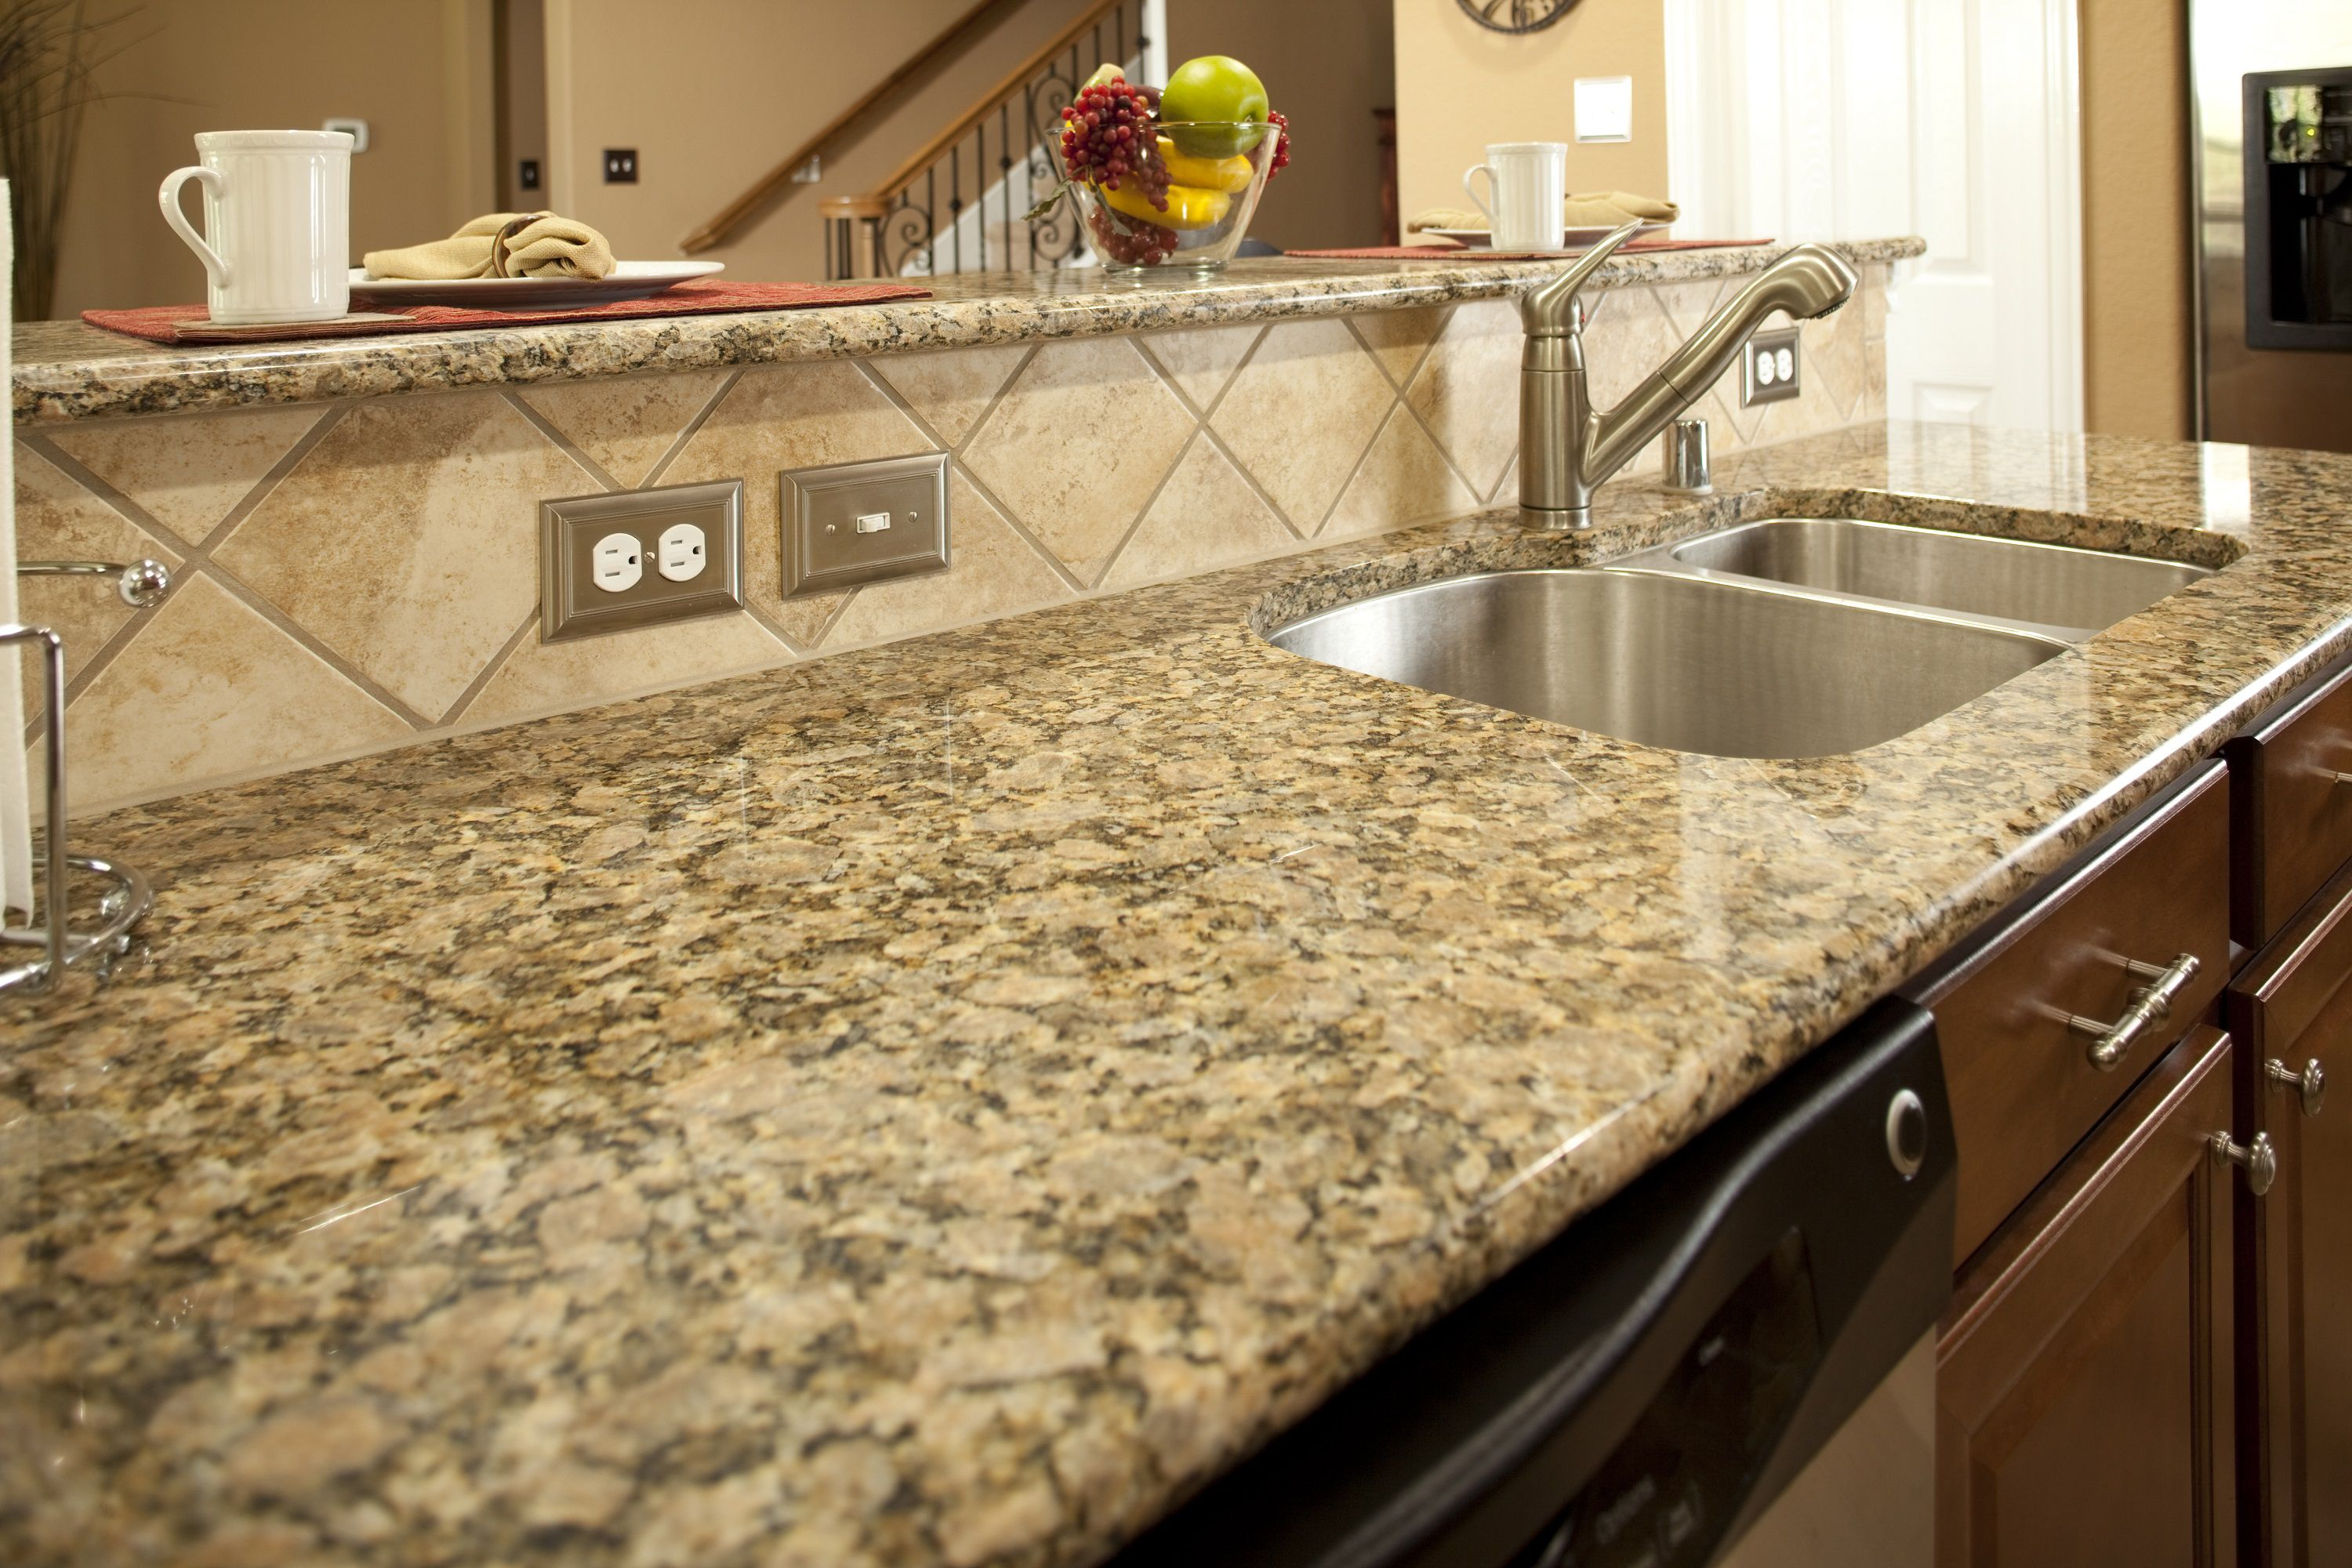 Granite Wrap Countertops Cleaning Tips For 6 Types Of Stone Countertops